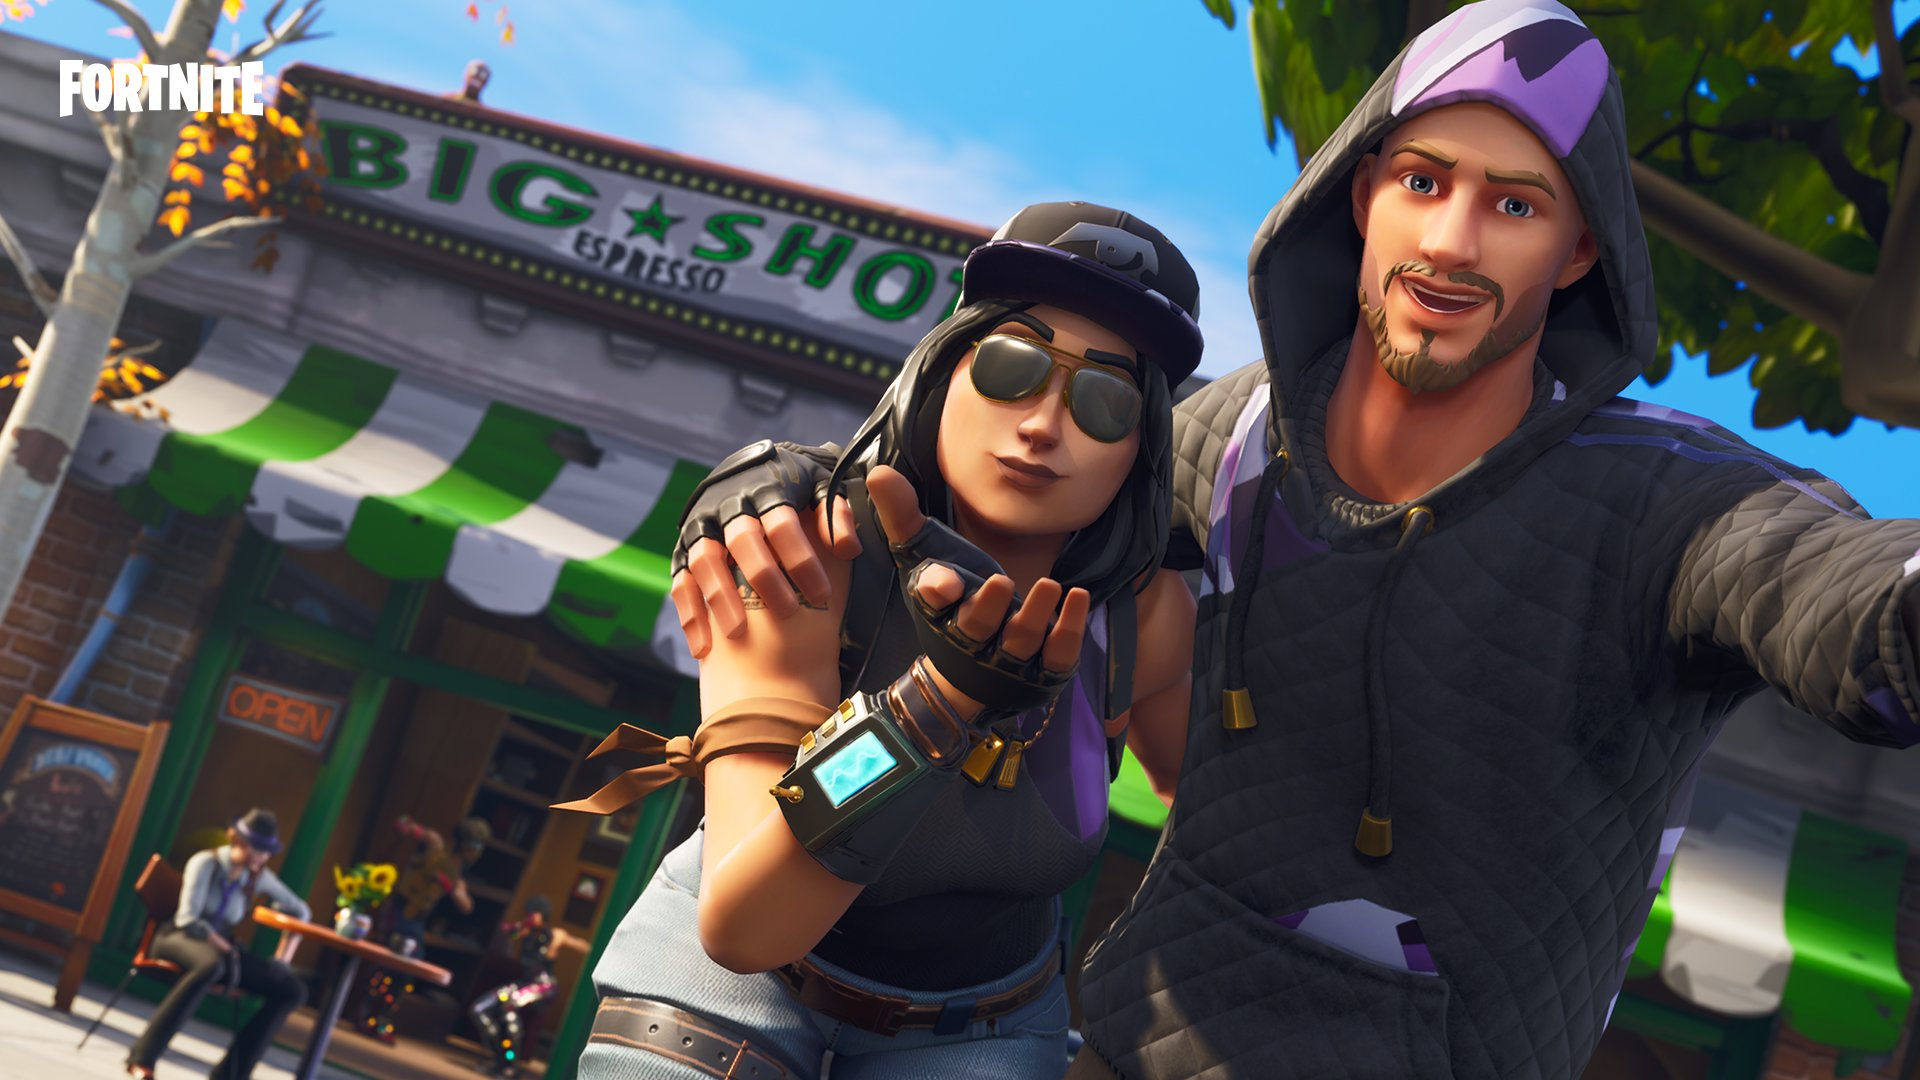 Fortnite Christmas.Fortnite Leaks Gifting Update Christmas In July And More